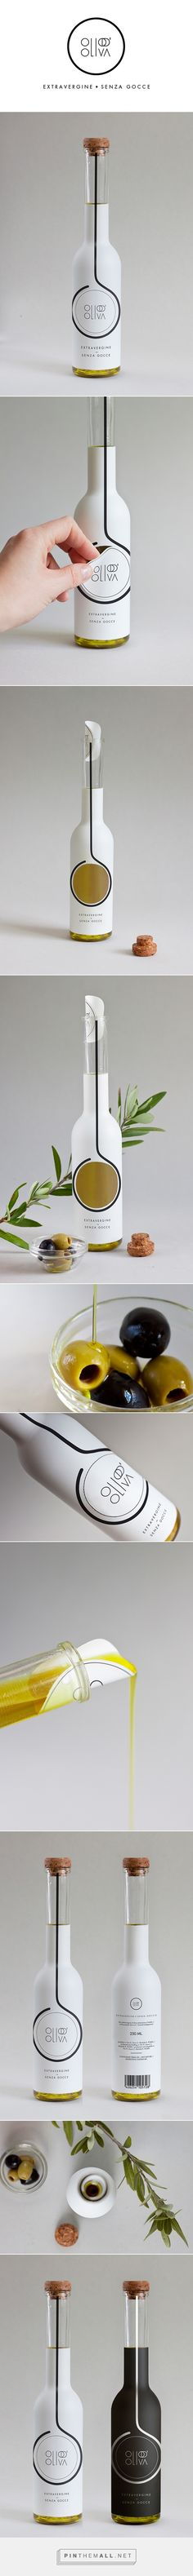 OLIO D'OLIVA on Behance by Alessia Sistori curated by Packaging Diva PD. Since there was passed a new law in some countries of europe, that no longer allows offering refillable oil bottles in restaurants, she invented this interactive packaging for extra virgin olive oil.